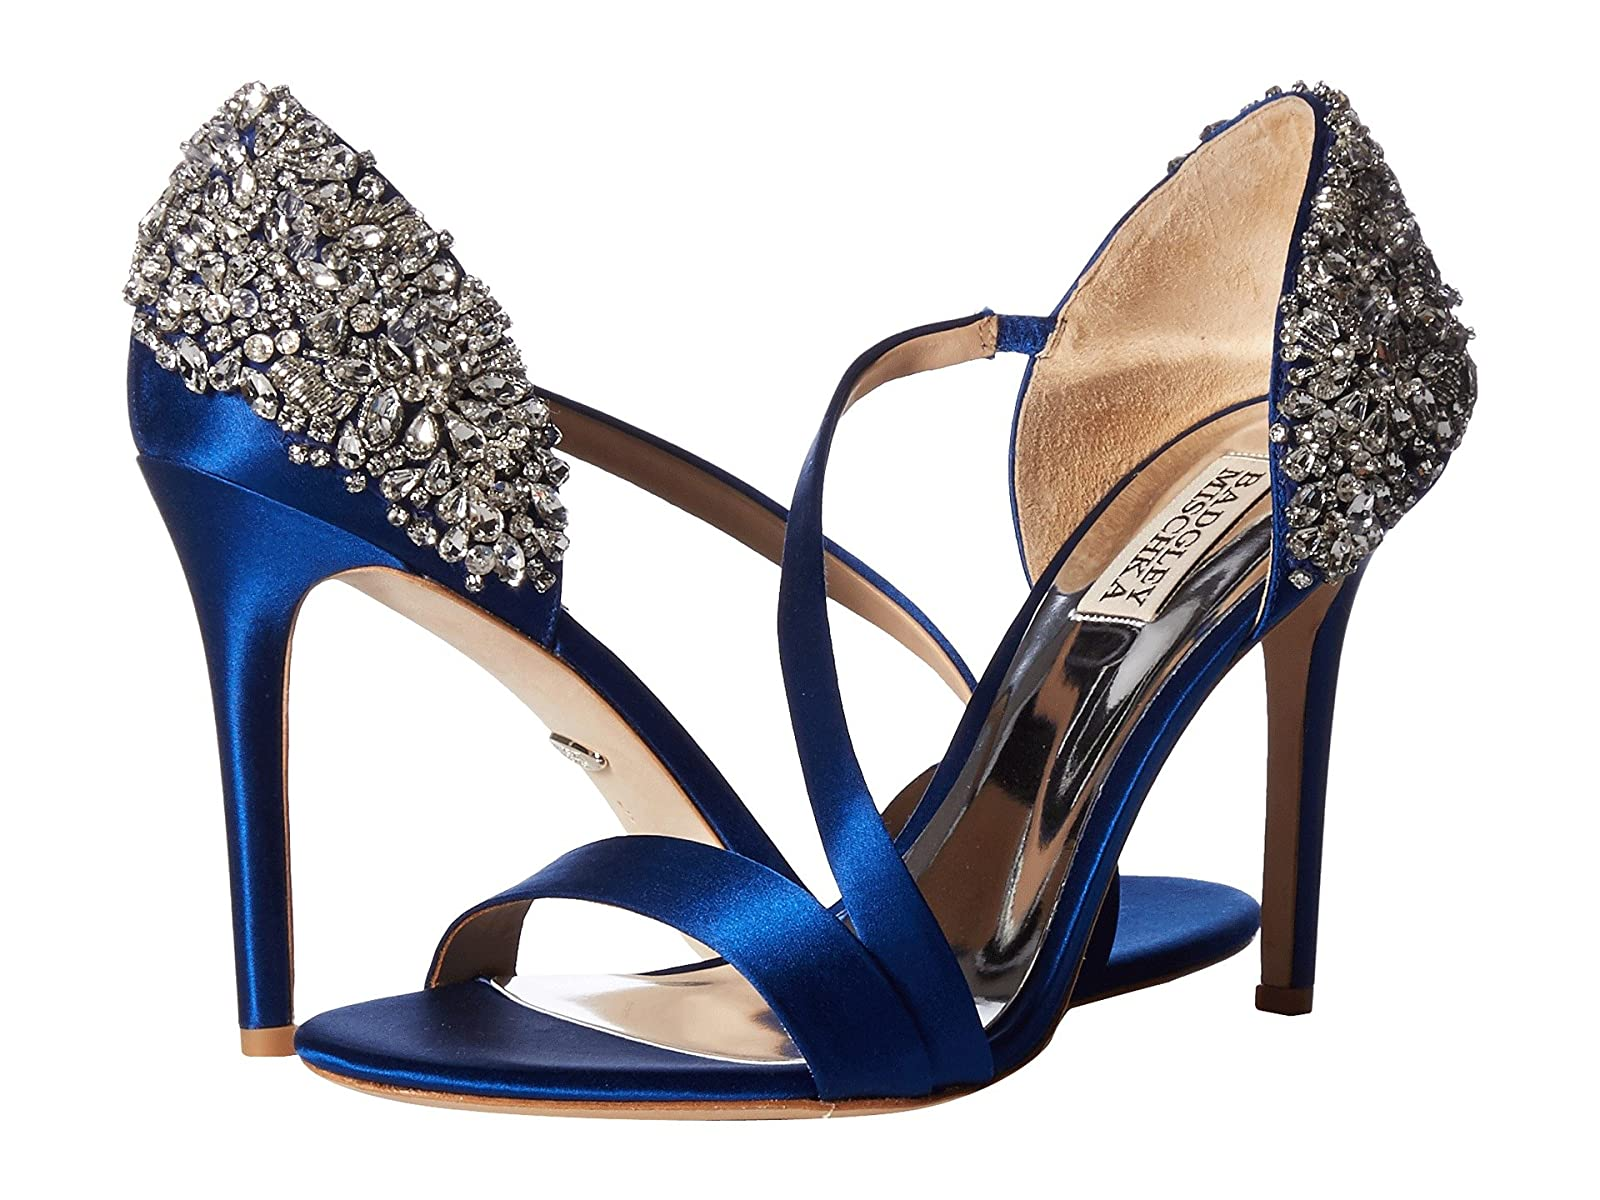 Badgley Mischka PaulineAtmospheric grades have affordable shoes